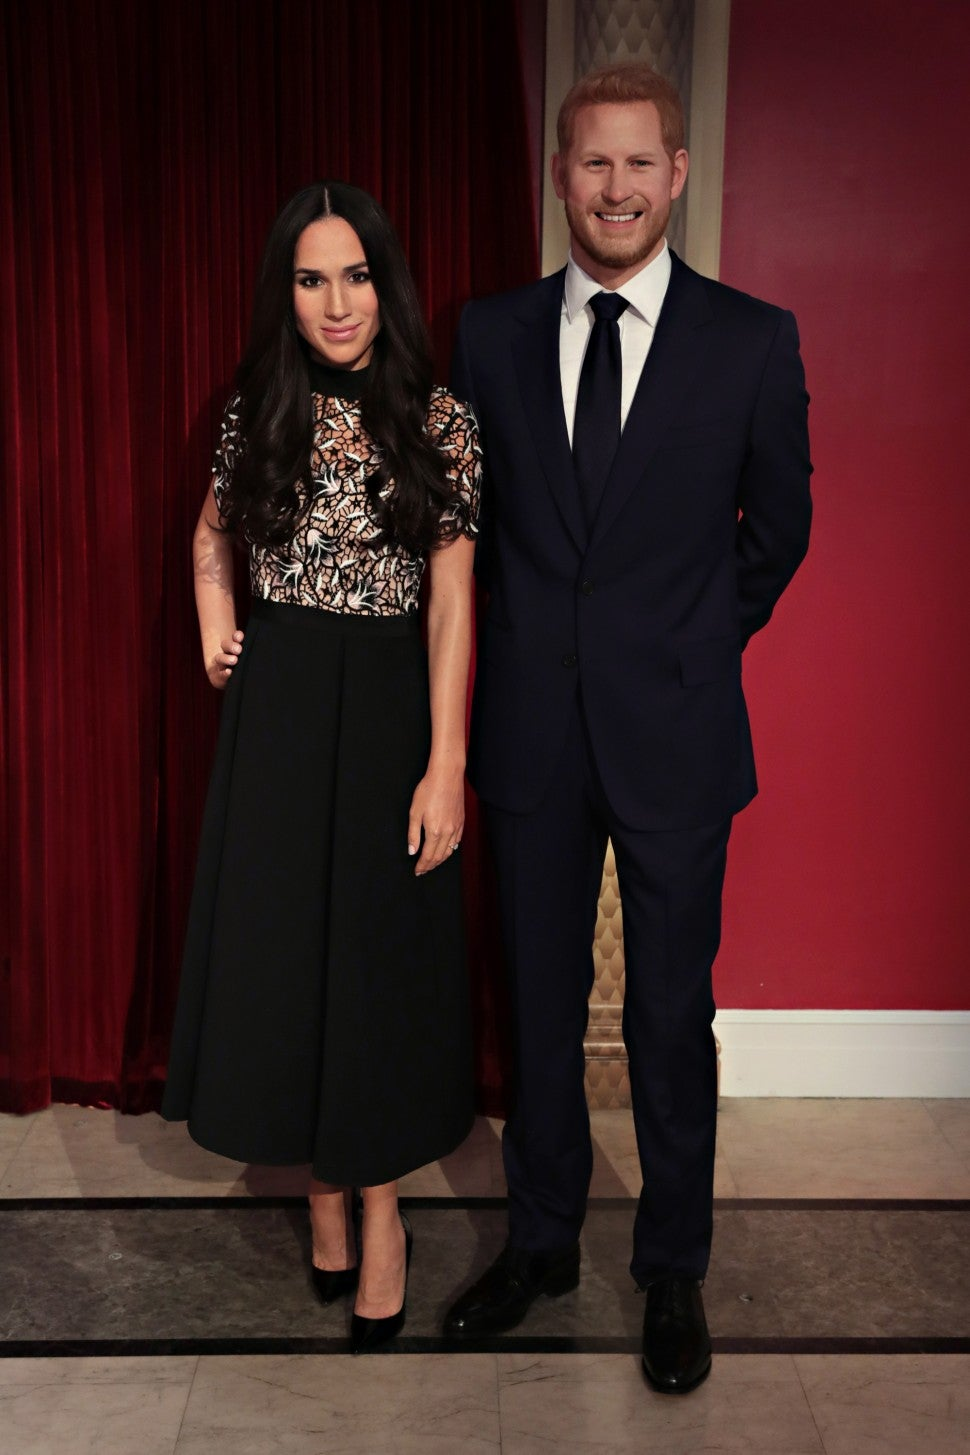 meghan_markle_wax_figure_gettyimages-956541060.jpg